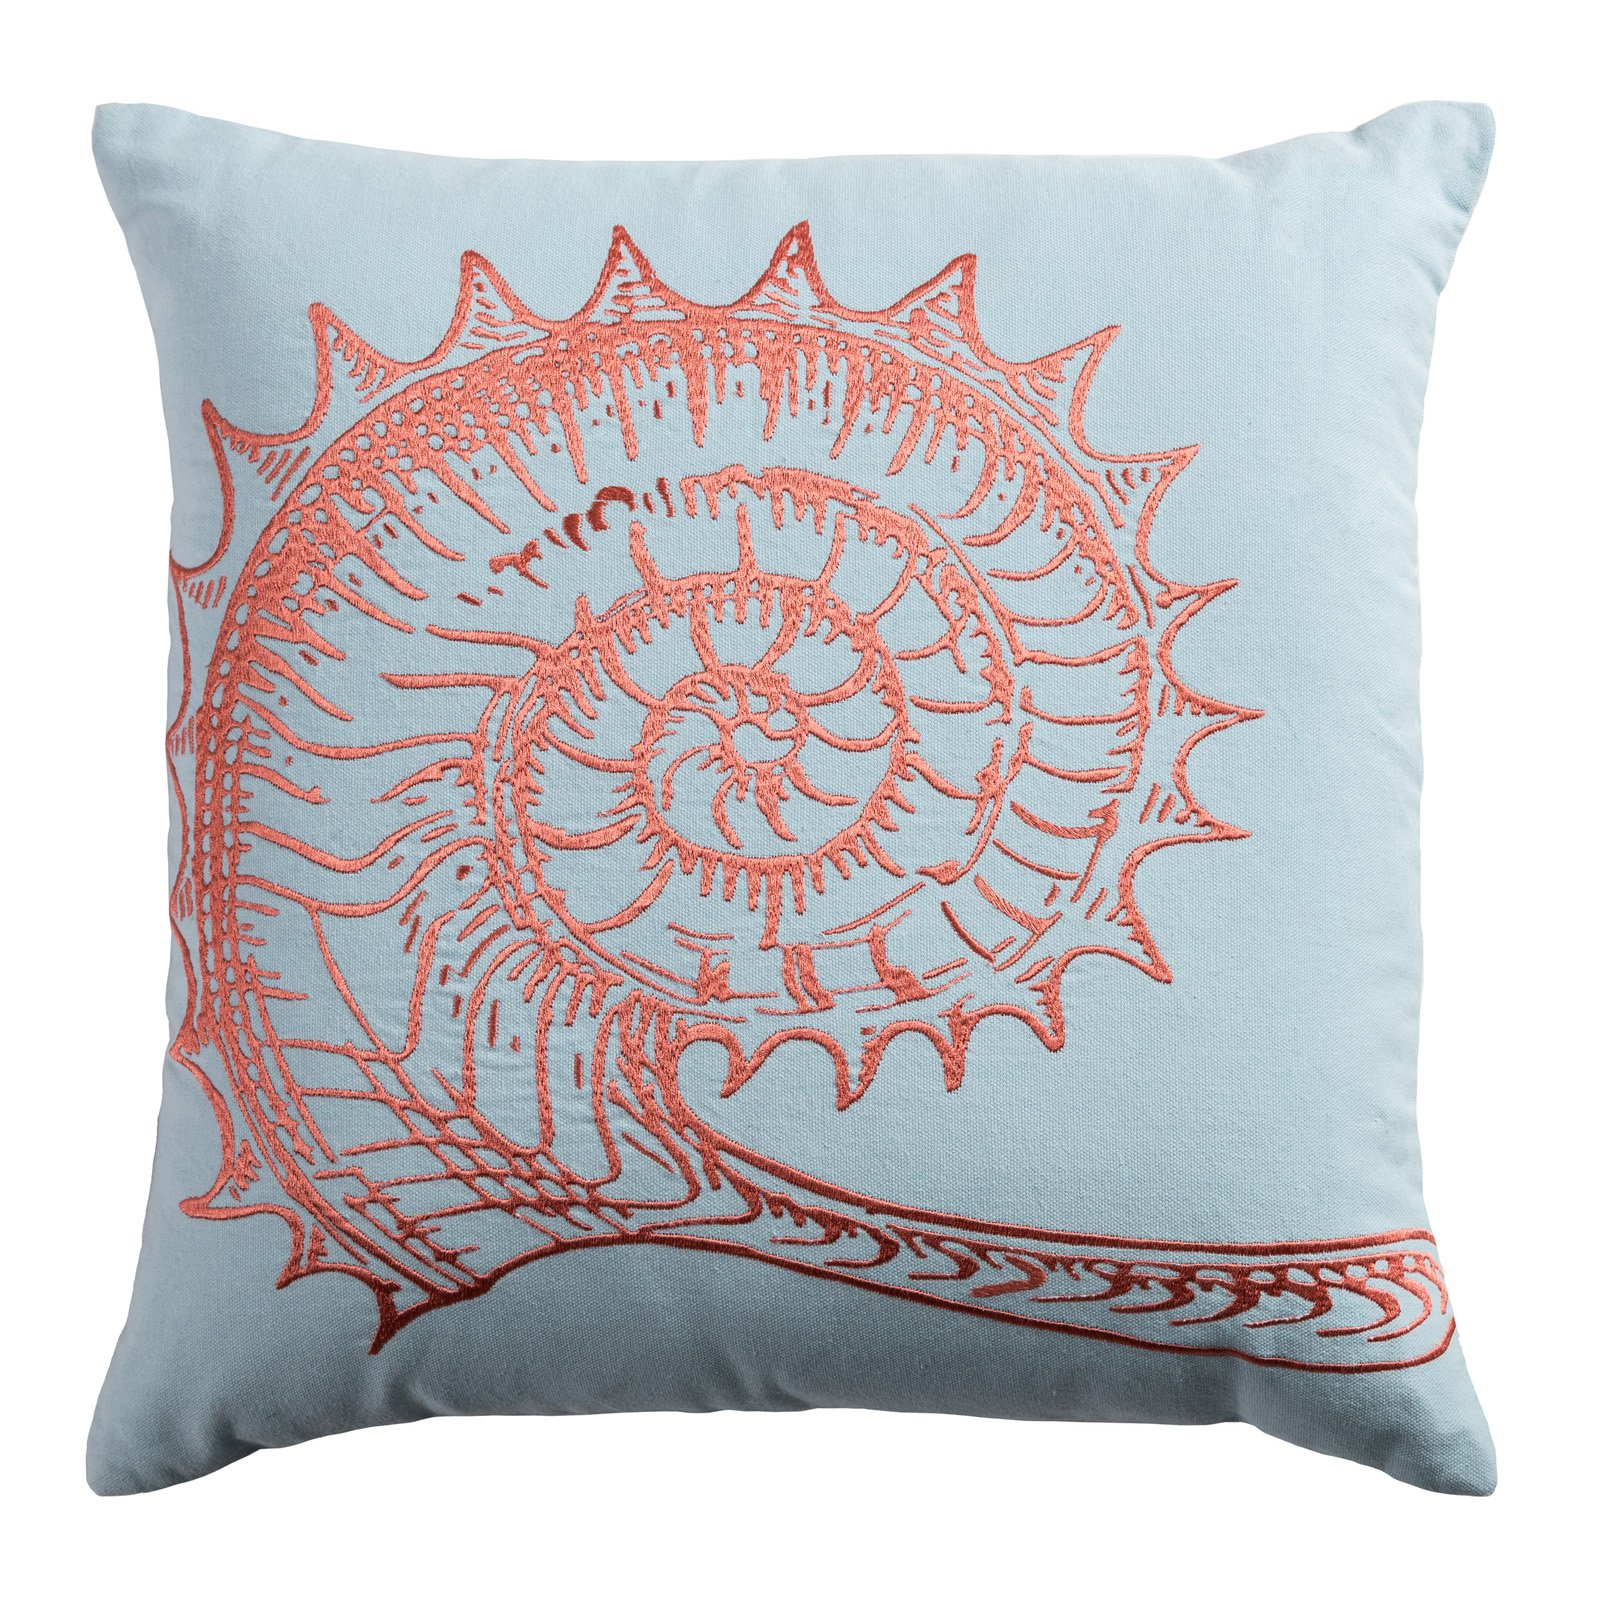 "Rizzy Home Decorative Poly Filled Throw Pillow Seashell 18""X18"" Coral"